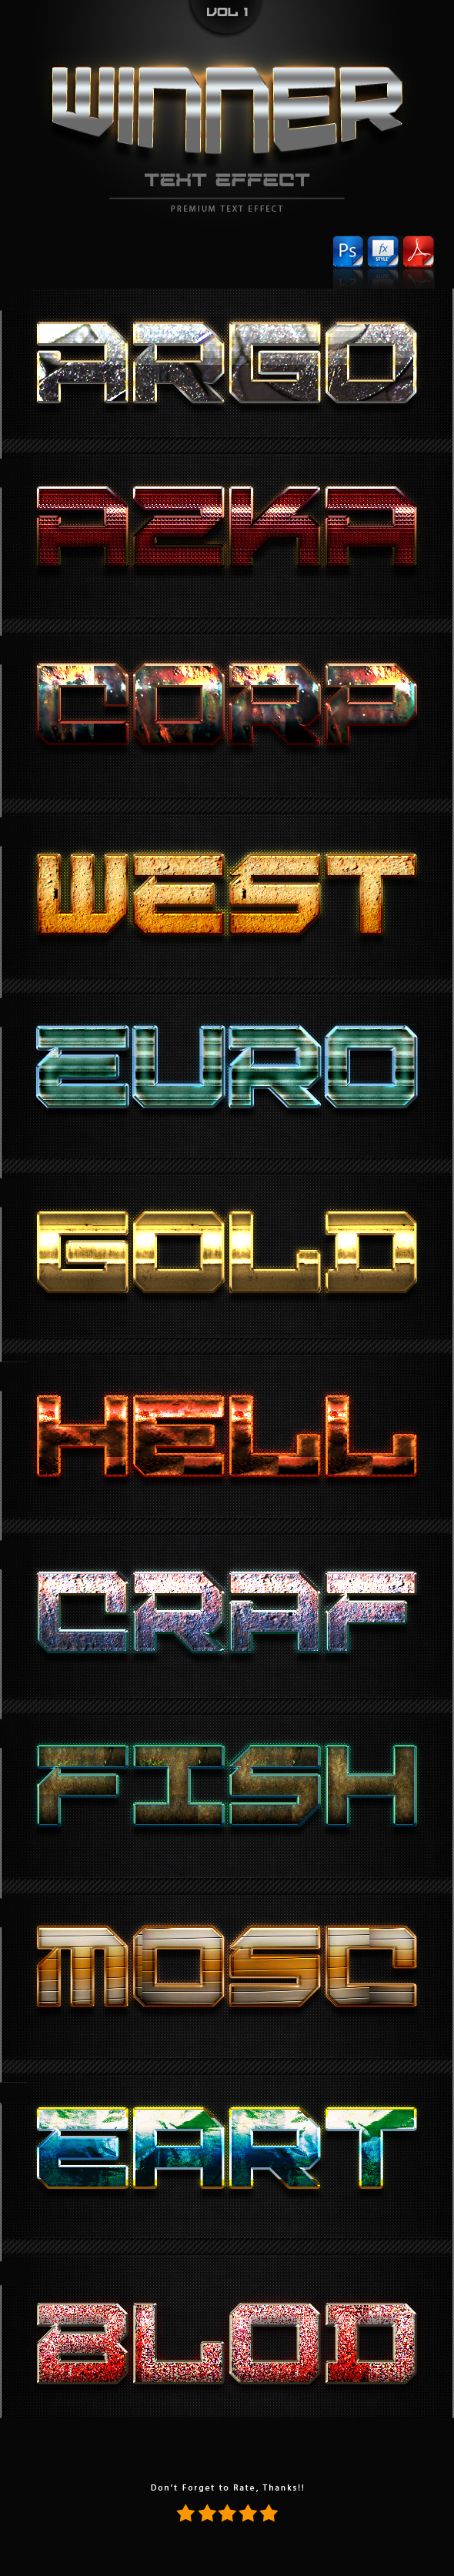 Winner Text Effect Styles Vol 1 - Text Effects Styles